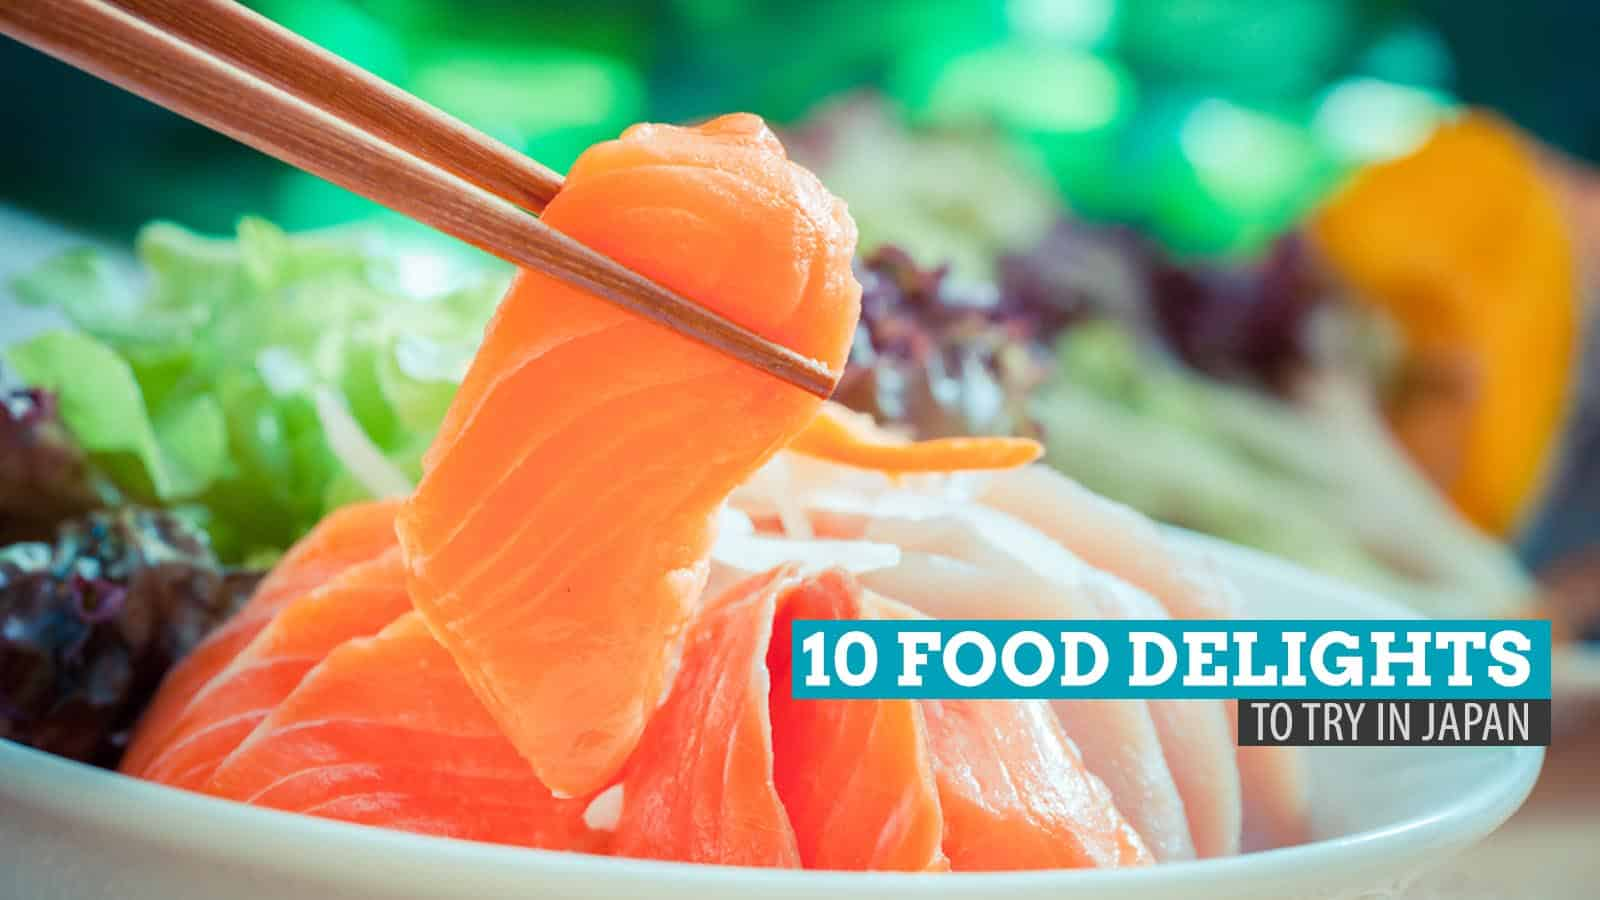 10 Food Delights to Try in Japan